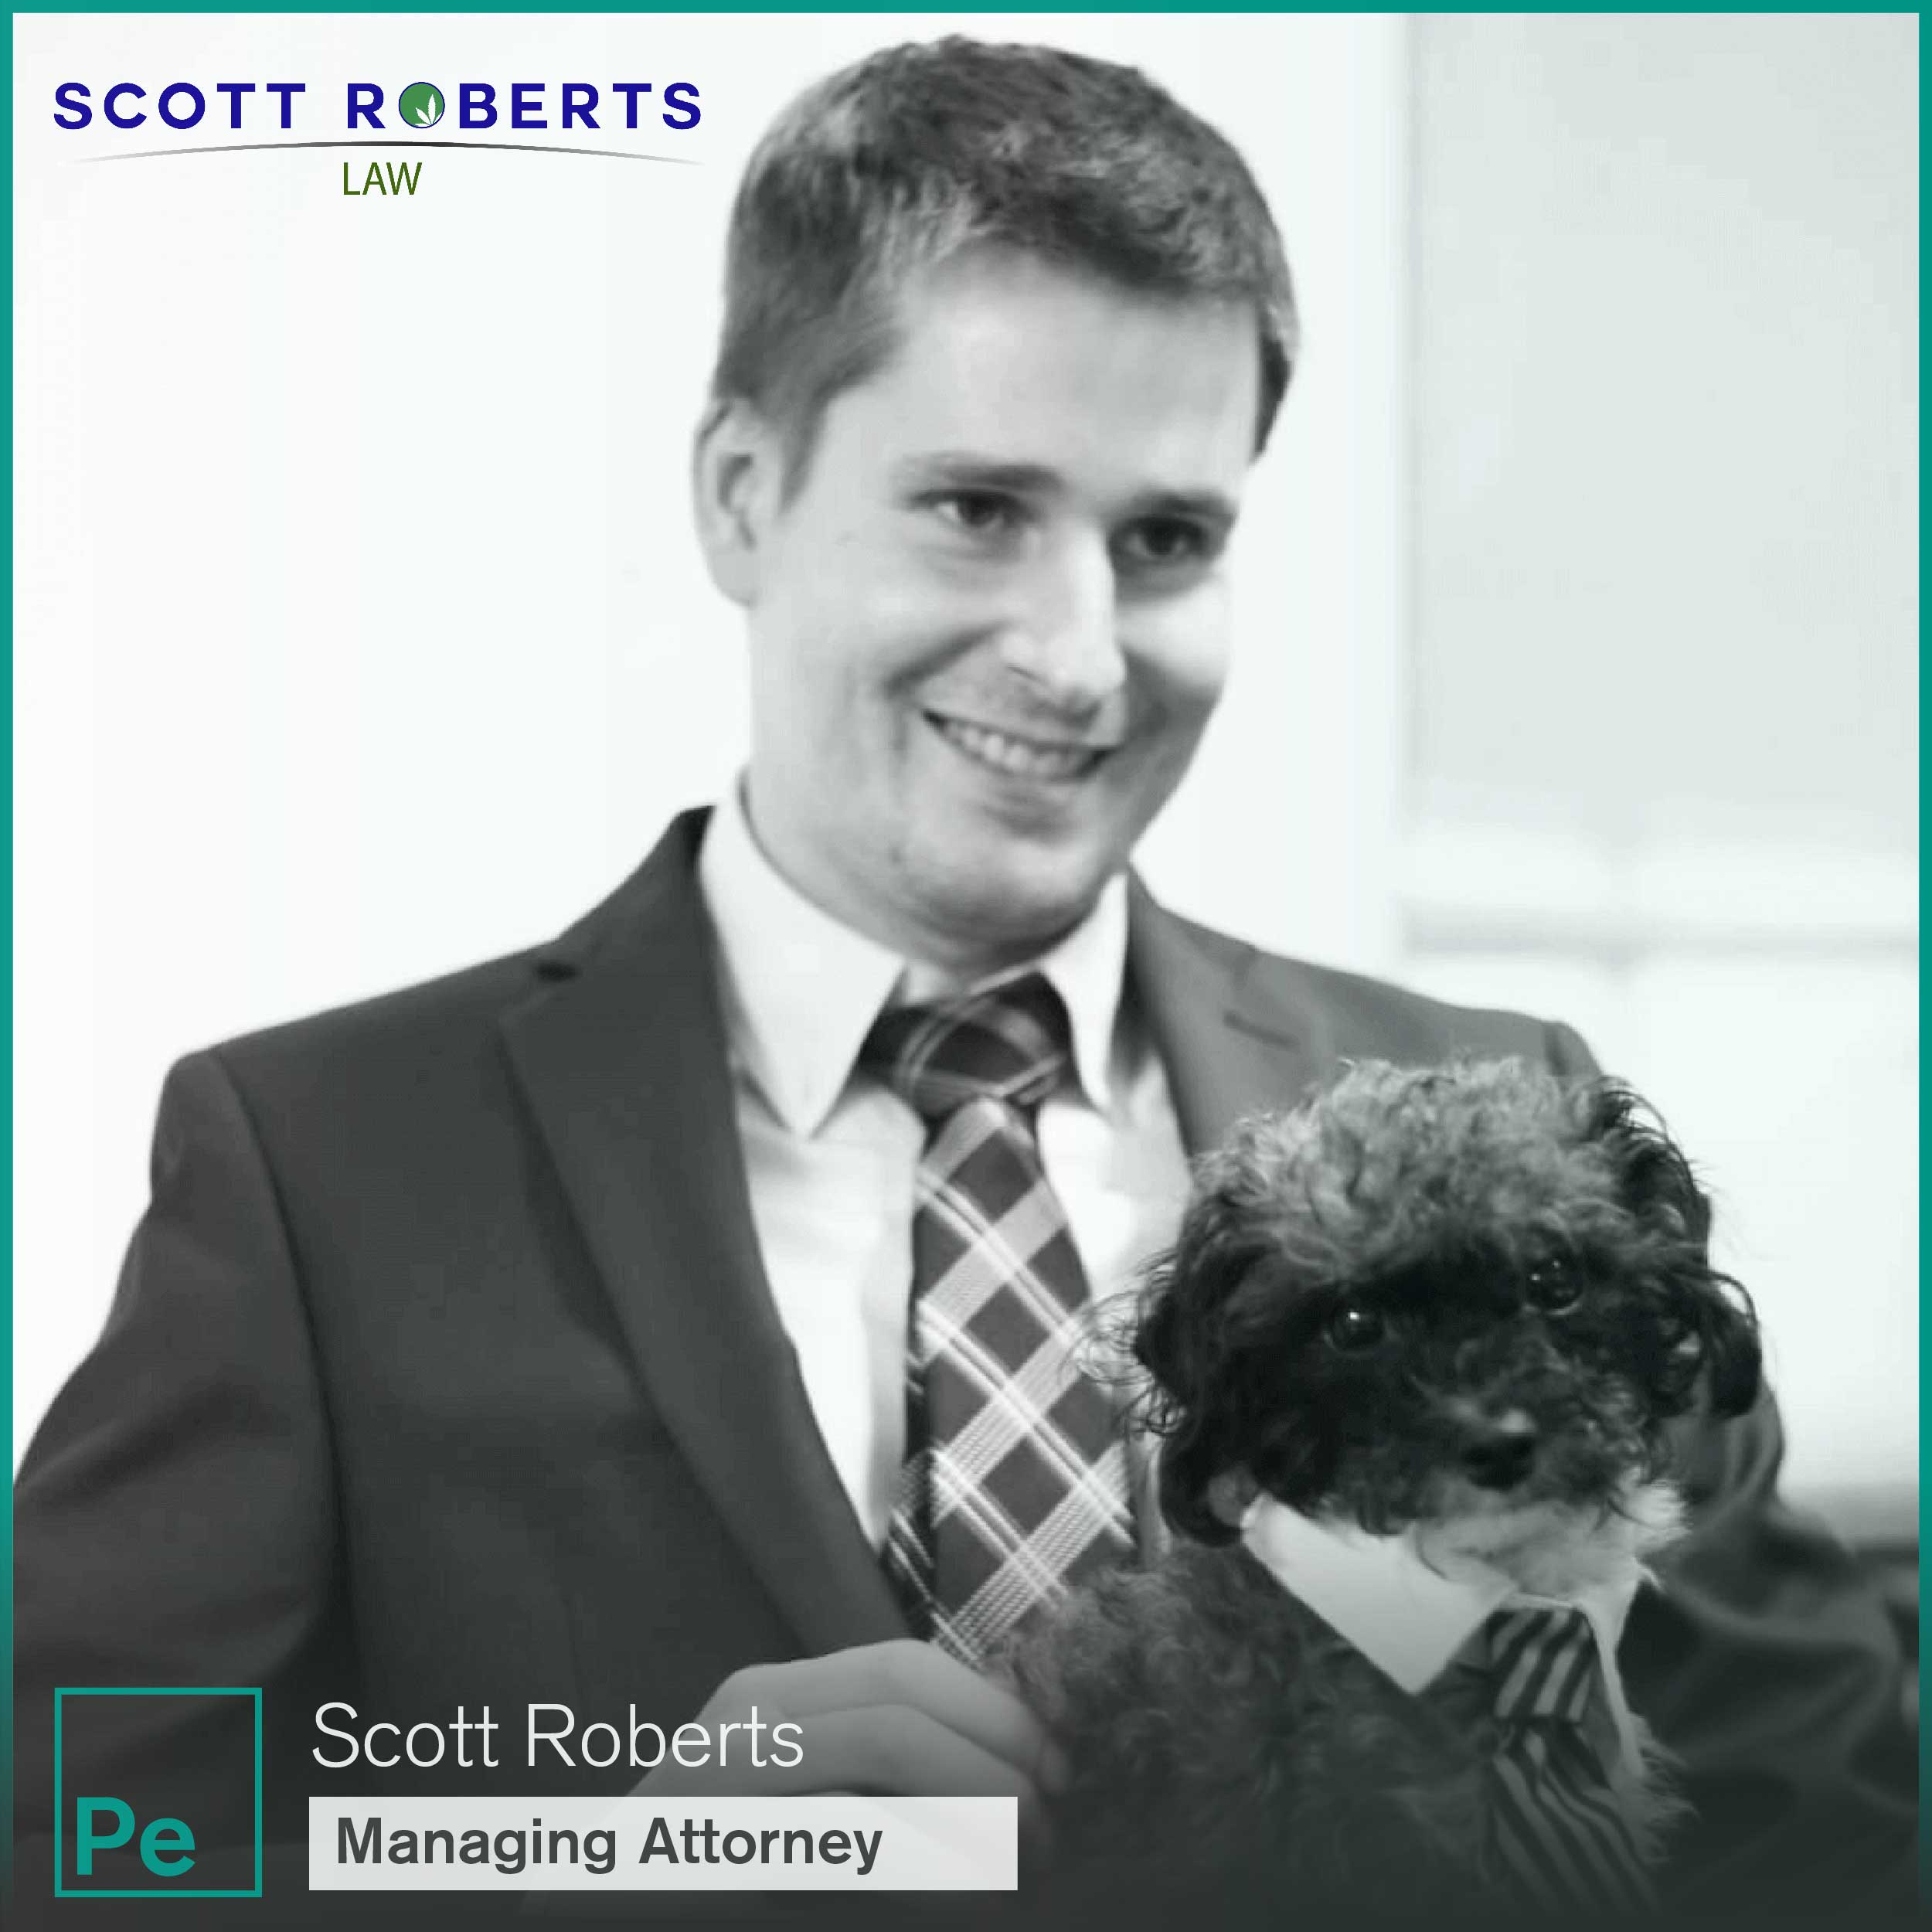 Scott Roberts Law Owner and Managing Attorney, a firm focused on cannabis rules and regulations in Michigan